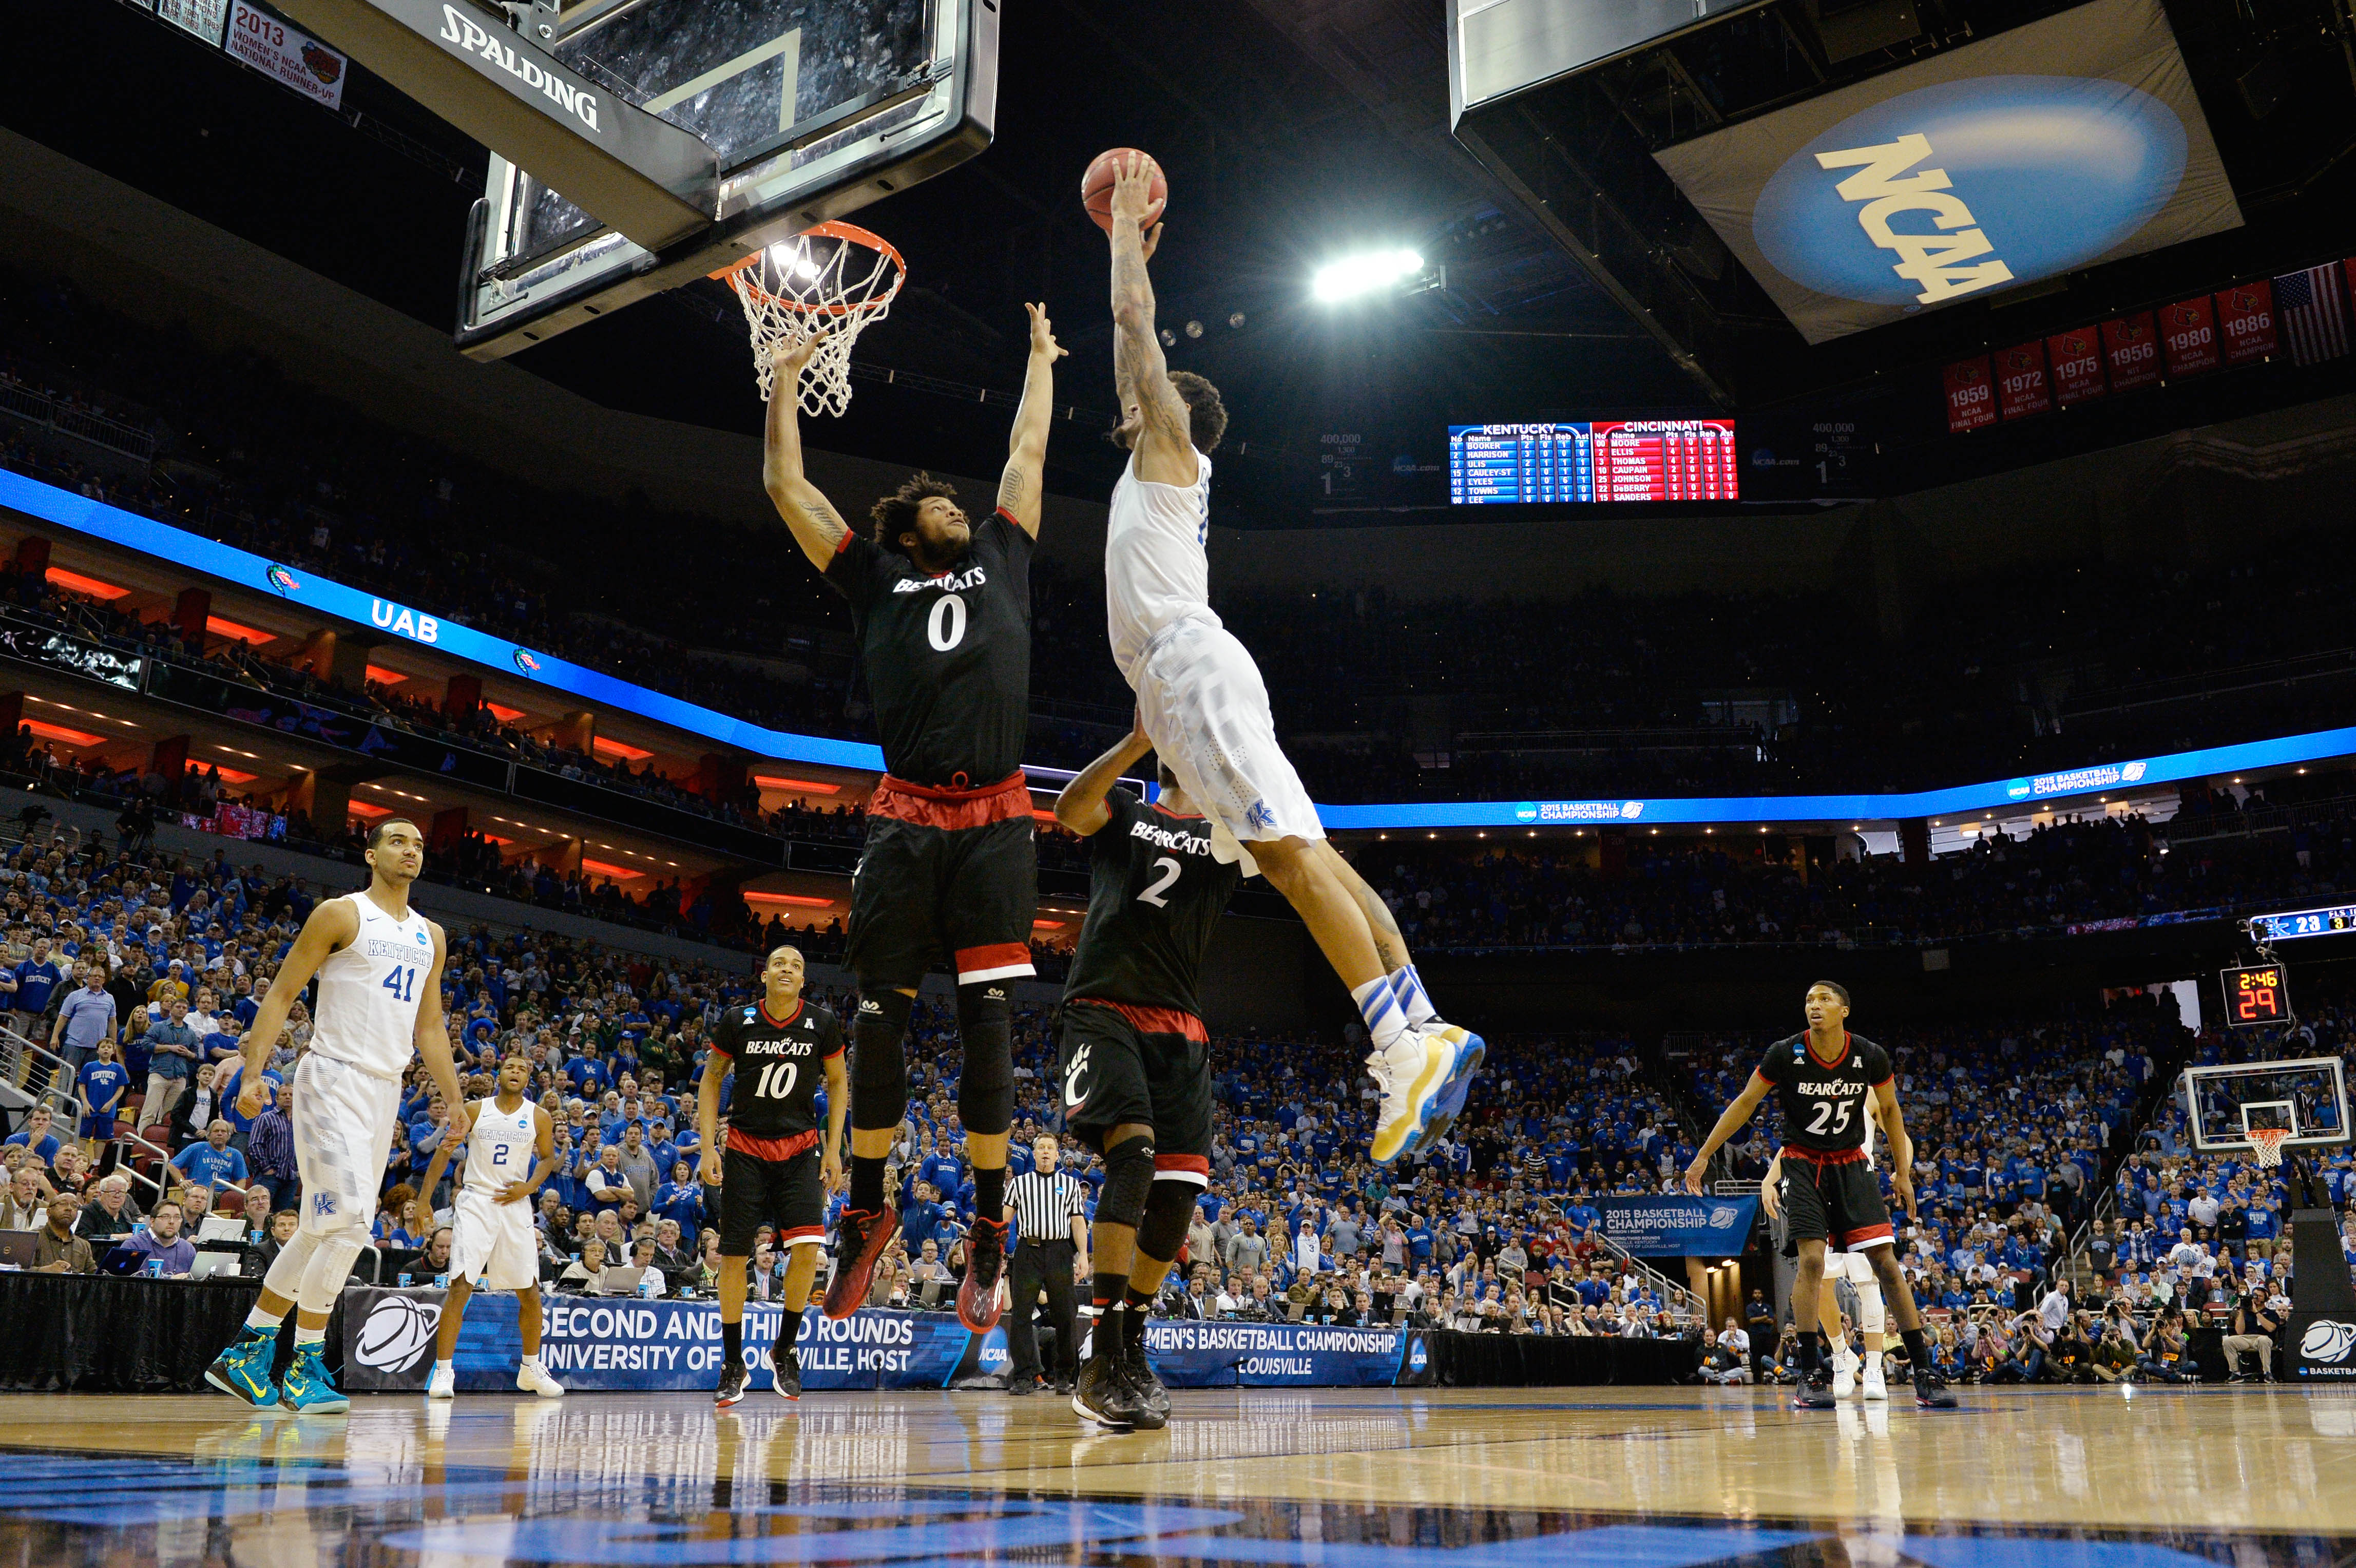 March Madness Picks Against The Spread 2018 Sweet 16: NCAA Tournament 2015: Sweet 16 And Elite Eight Preview